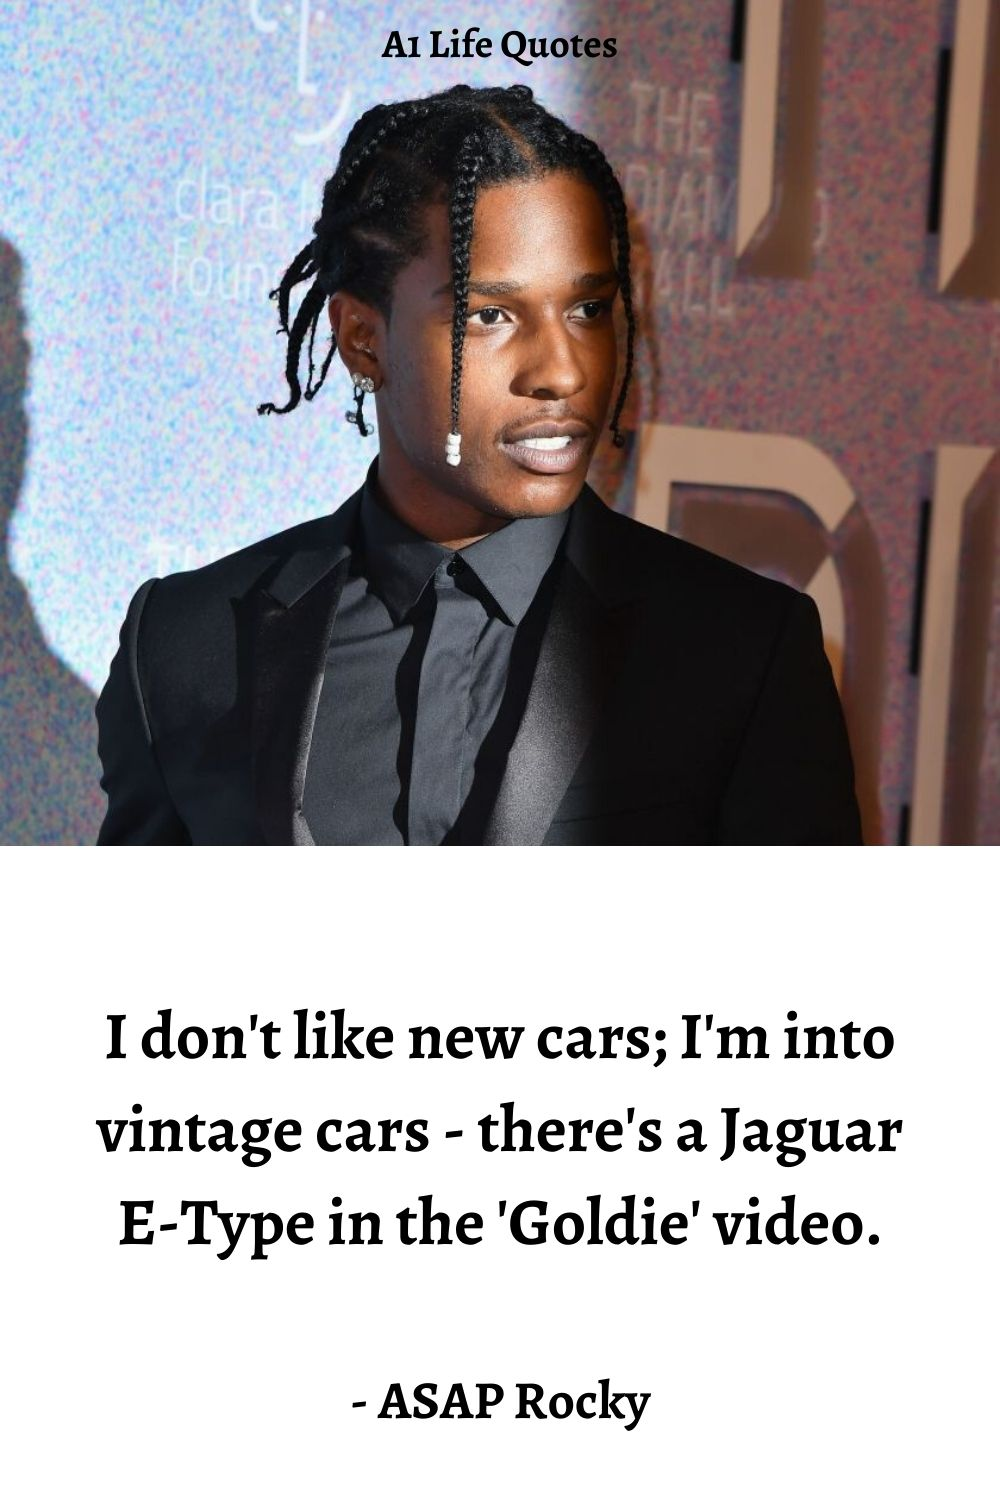 asap rocky lyric quotes